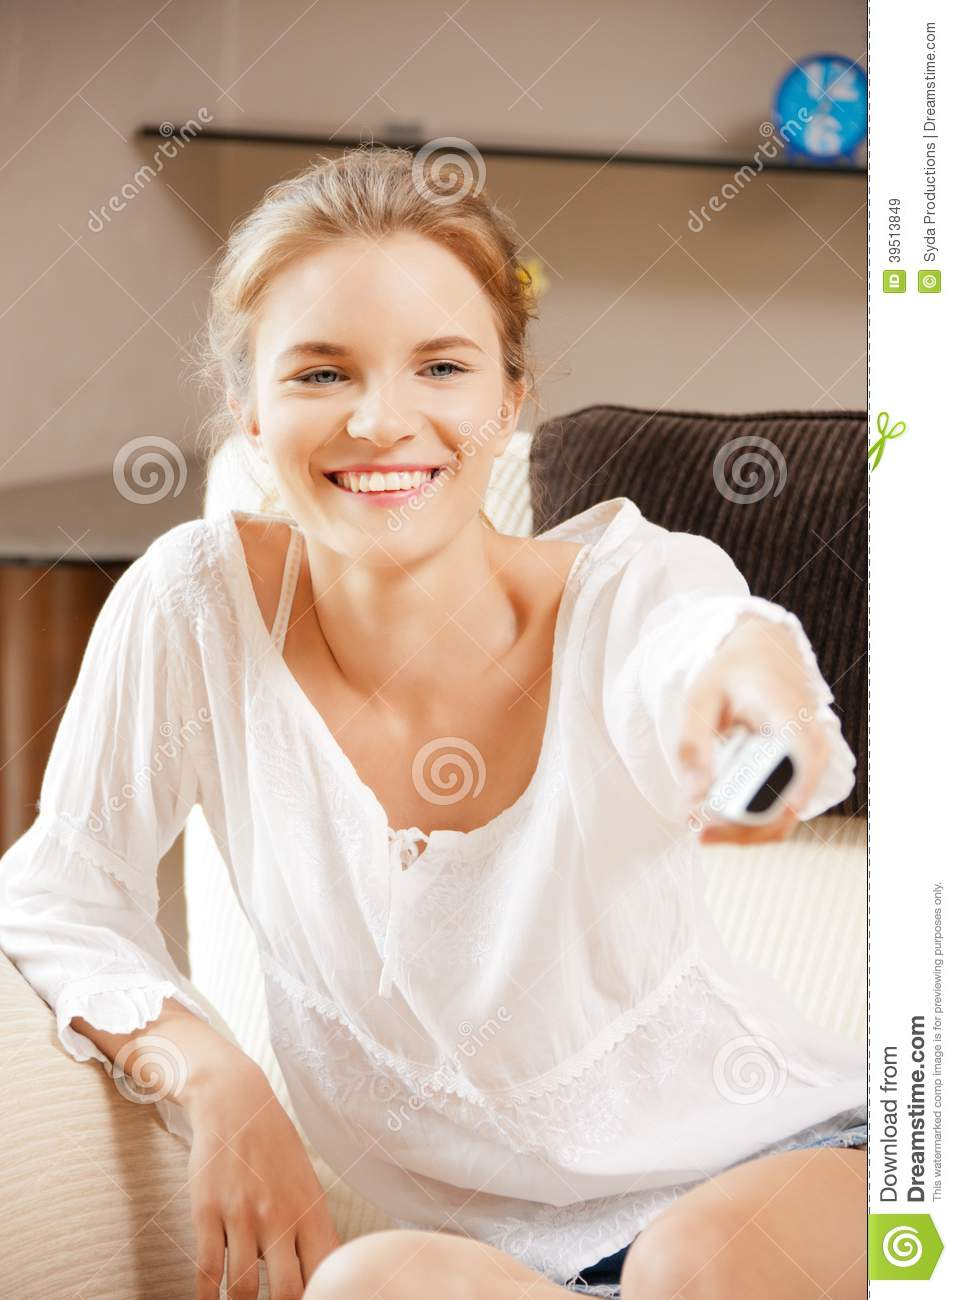 Happy teenage girl with TV remote